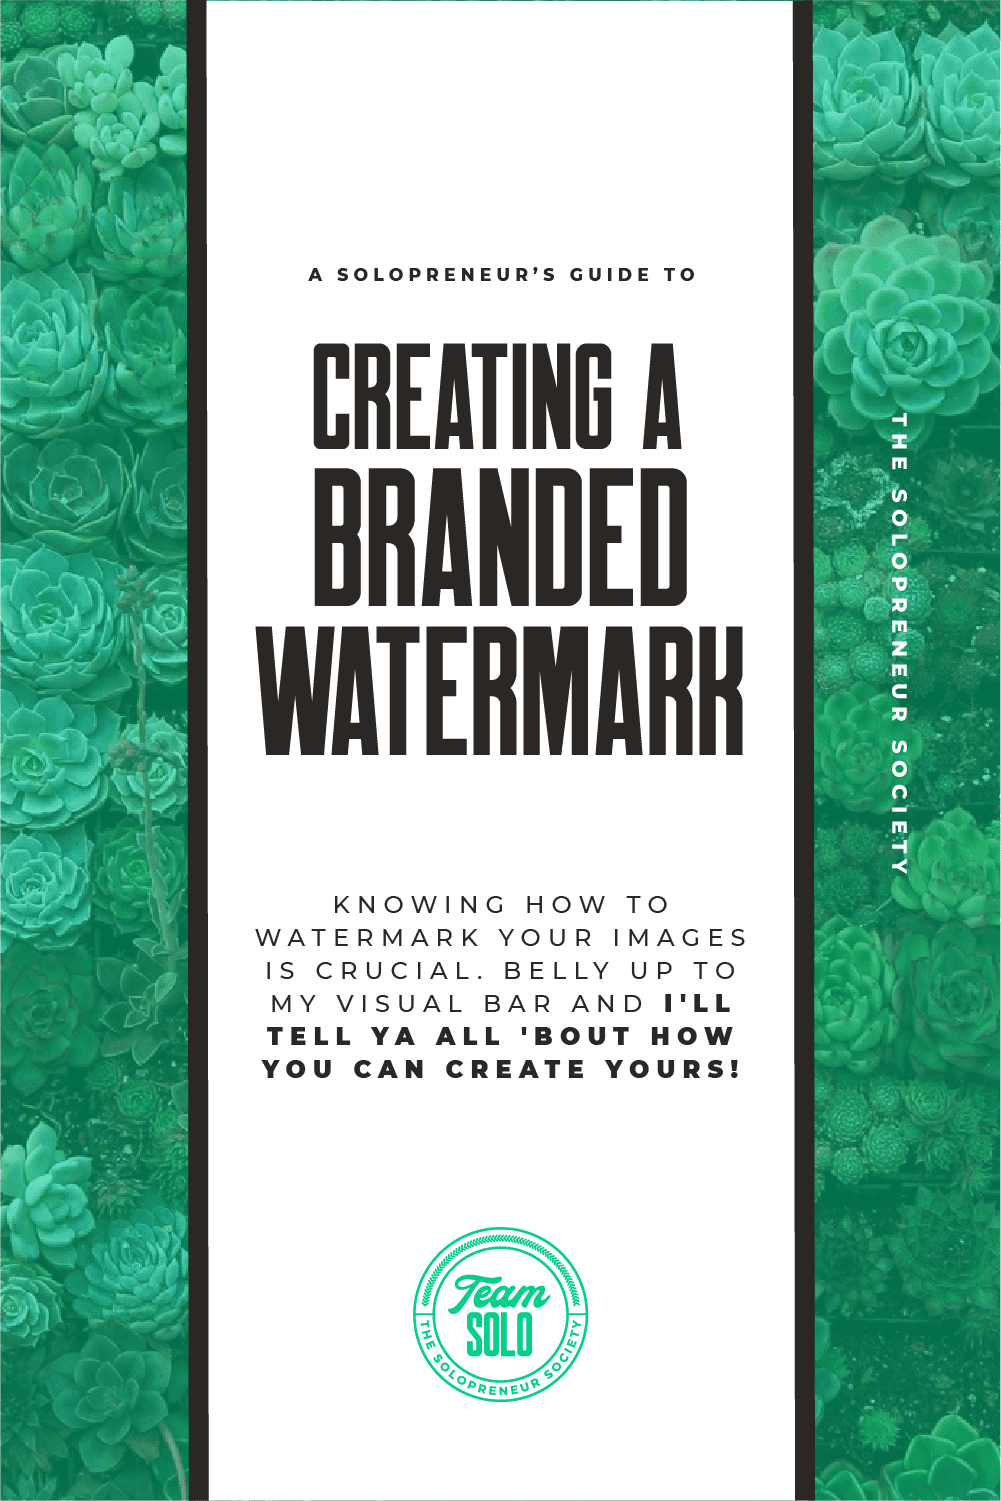 A Solopreneur's Guide To Creating A Branded Watermark